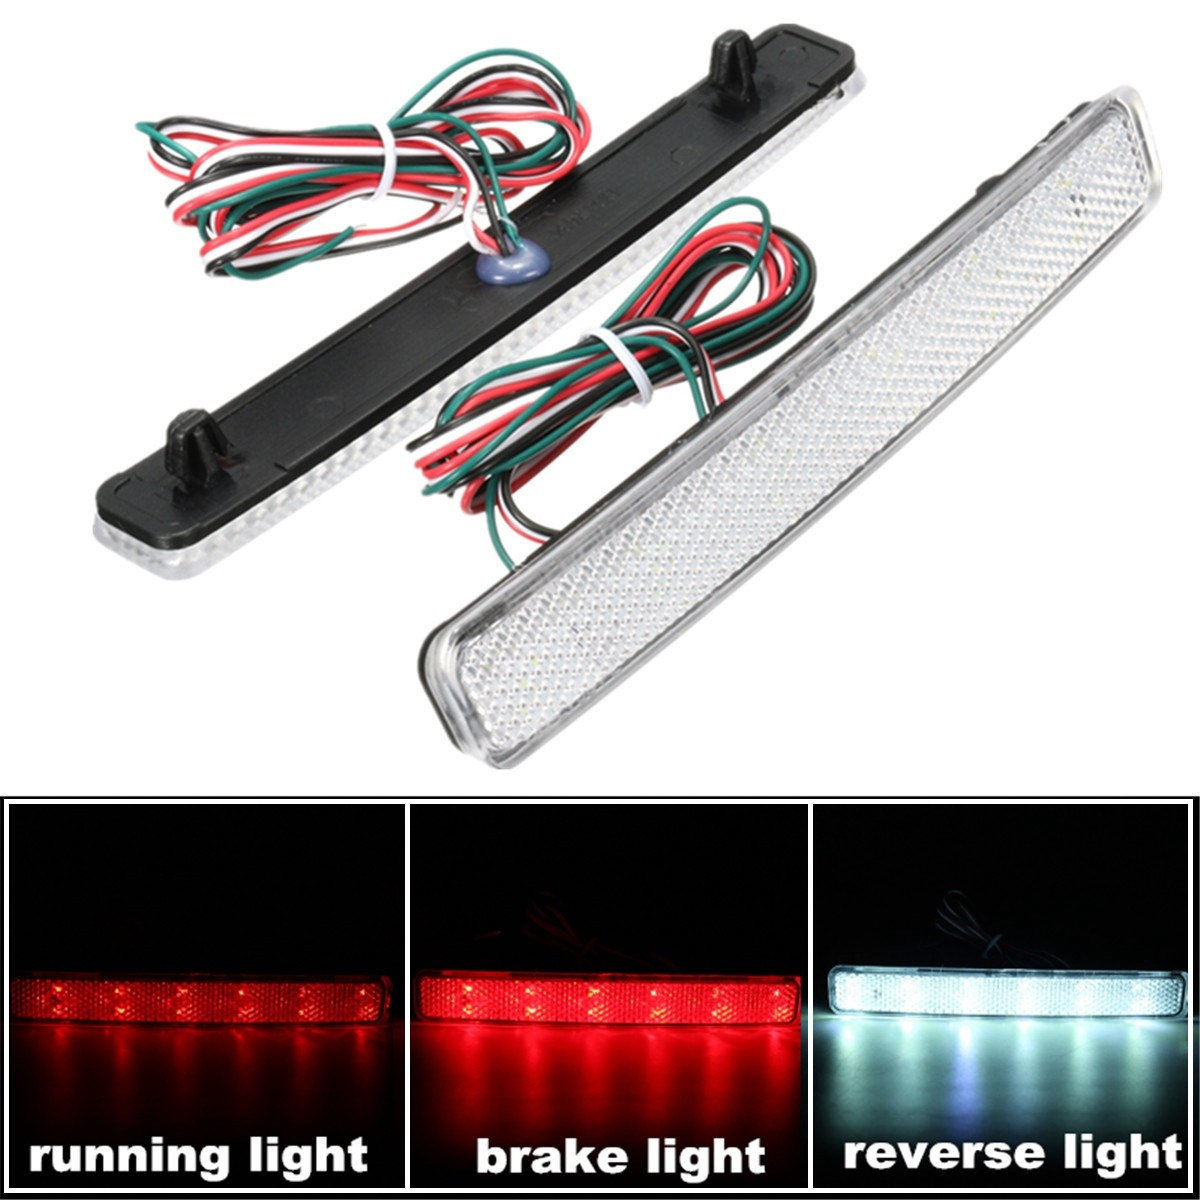 2x 24 LED Auto Rear Reflectors Bumper Tail Fog Lamp Brake Stop Night Running Lights Driving Reverse Light For VW/T5 Transporter dongzhen fit for nissan bluebird sylphy almera led red rear bumper reflectors light night running brake warning lights lamp